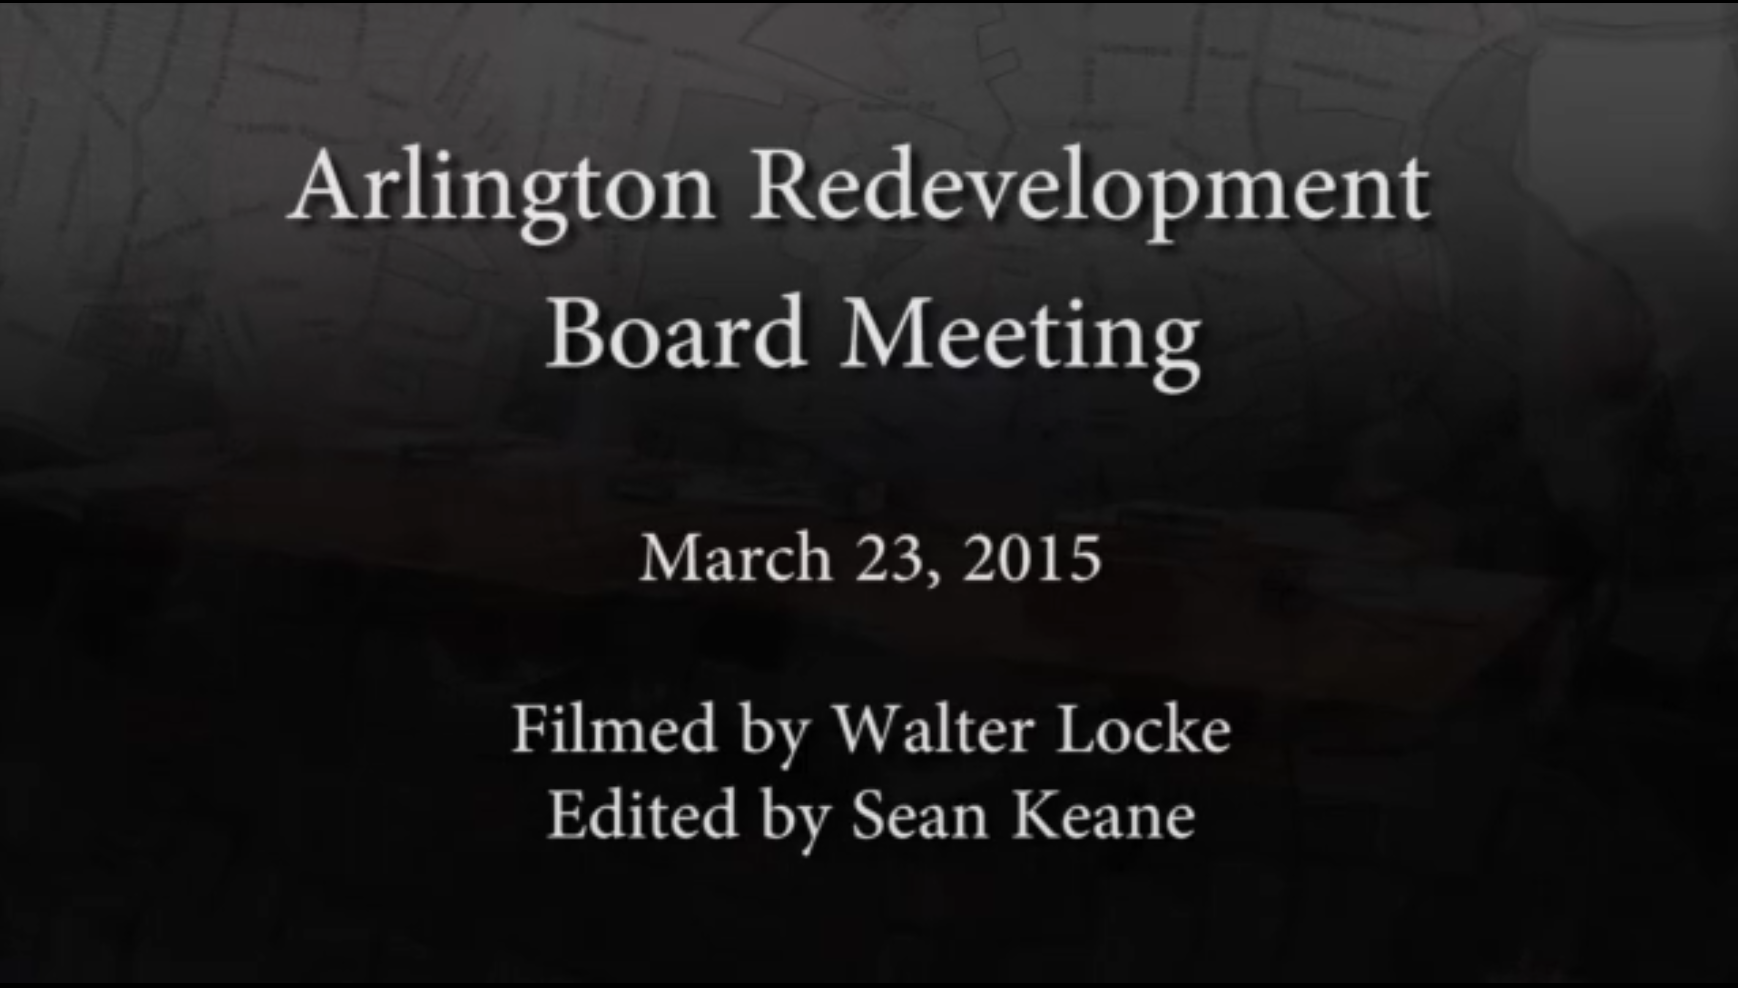 Redevelopment Board Meeting – March 23, 2015